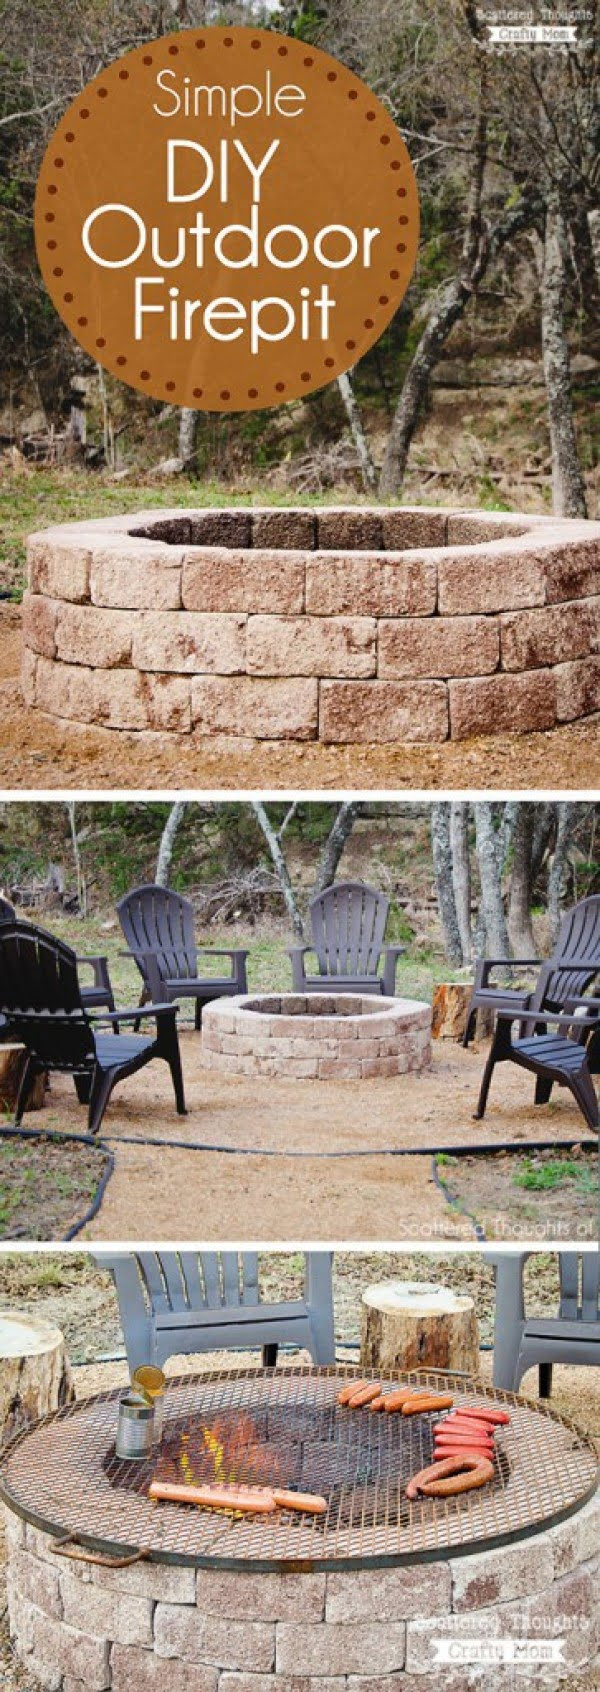 Check out the tutorial on how to make a simple DIY outdoor fire pit